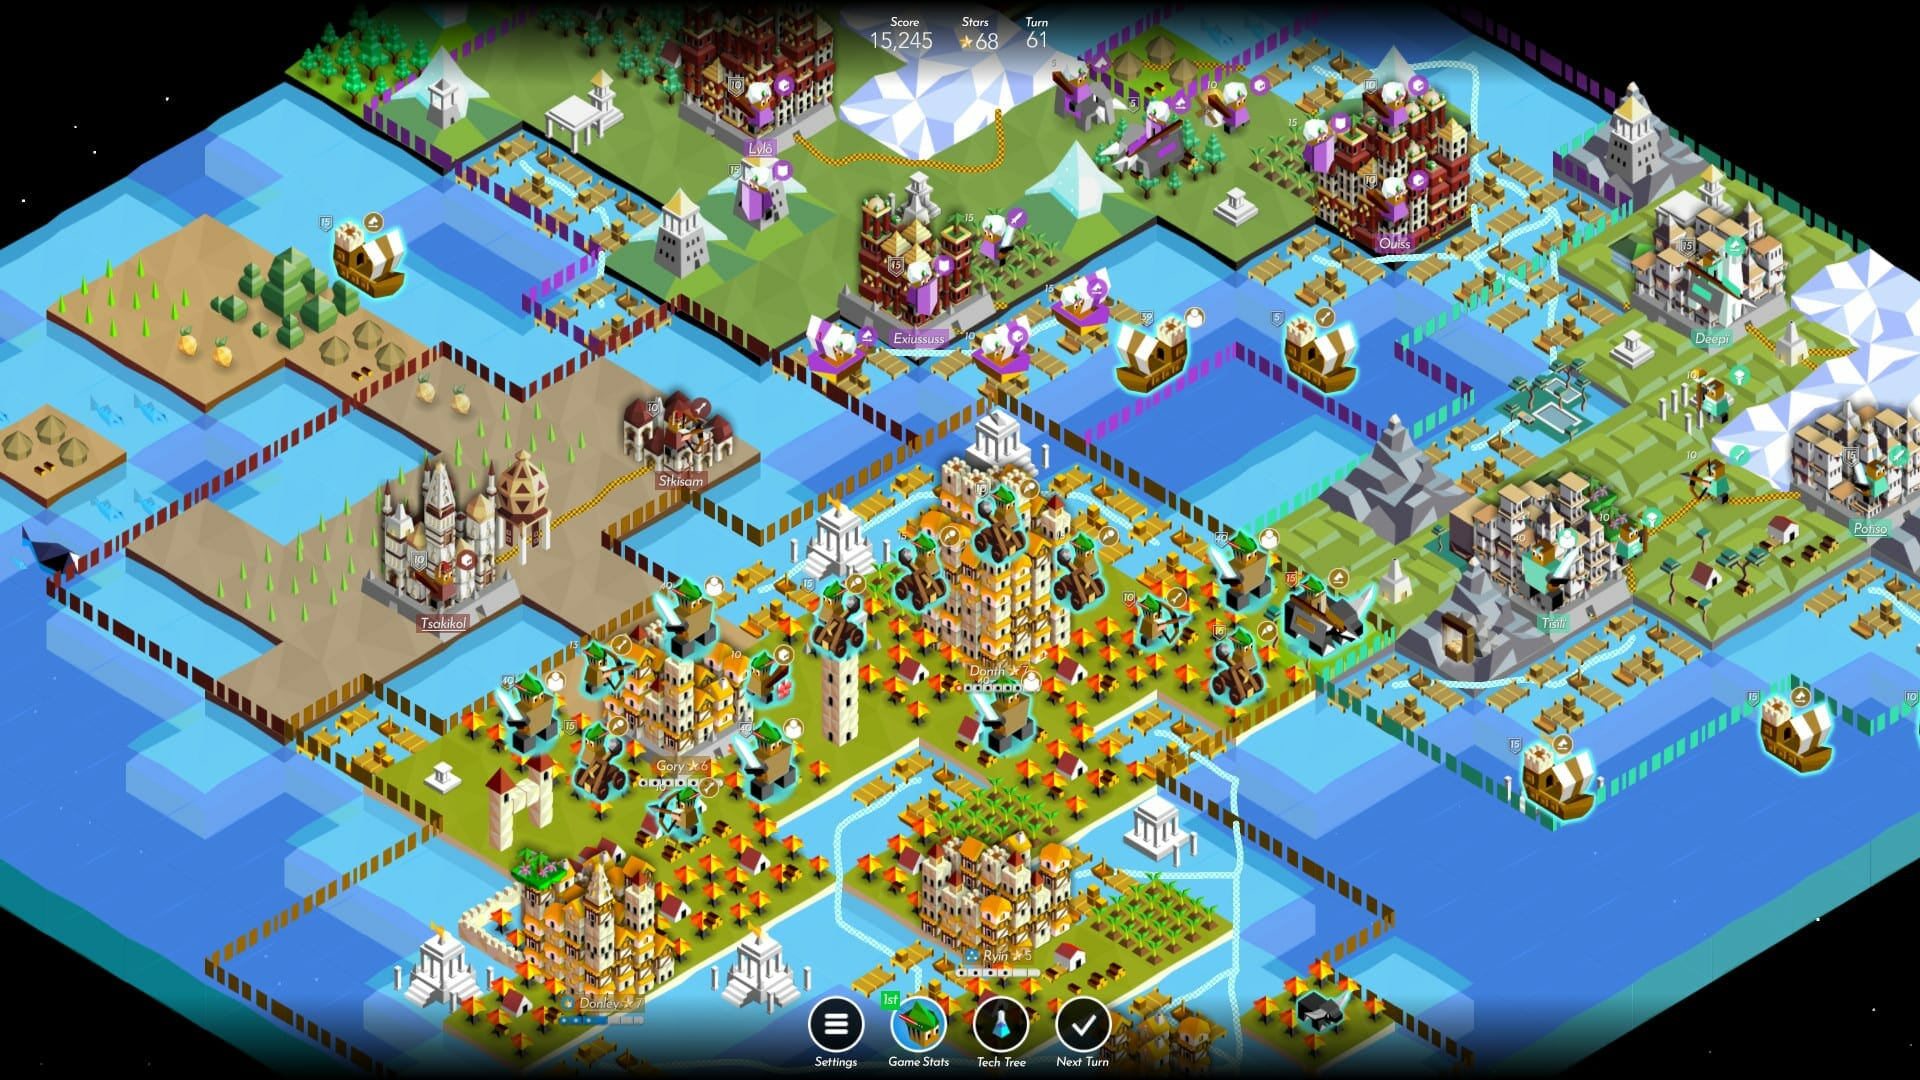 The Battle of Polytopia not launching